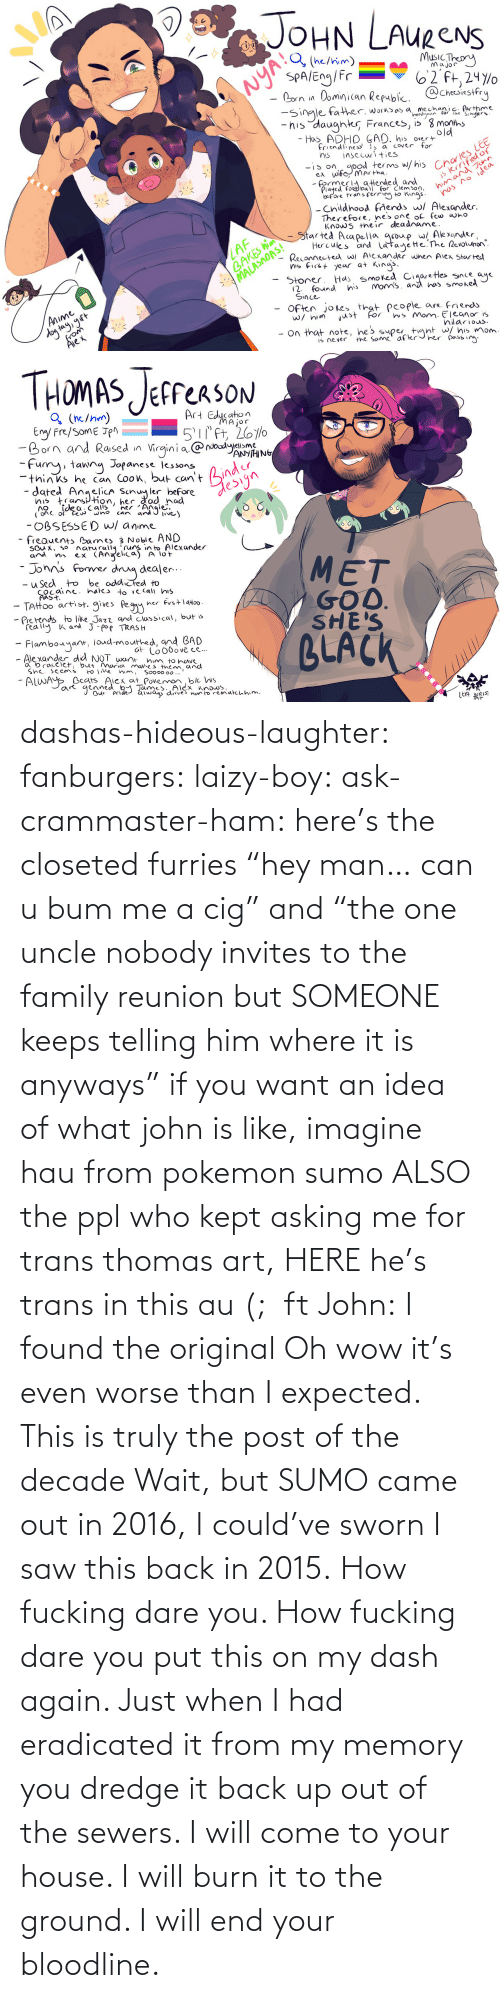 "Pokemon: dashas-hideous-laughter:  fanburgers:   laizy-boy:   ask-crammaster-ham:   here's the closeted furries ""hey man… can u bum me a cig"" and ""the one uncle nobody invites to the family reunion but SOMEONE keeps telling him where it is anyways""   if you want an idea of what john is like, imagine hau from pokemon sumo ALSO the ppl who kept asking me for trans thomas art, HERE he's trans in this au (;  ft John:    I found the original     Oh wow it's even worse than I expected. This is truly the post of the decade    Wait, but SUMO came out in 2016, I could've sworn I saw this back in 2015.    How fucking dare you. How fucking dare you put this on my dash again. Just when I had eradicated it from my memory you dredge it back up out of the sewers. I will come to your house. I will burn it to the ground. I will end your bloodline."